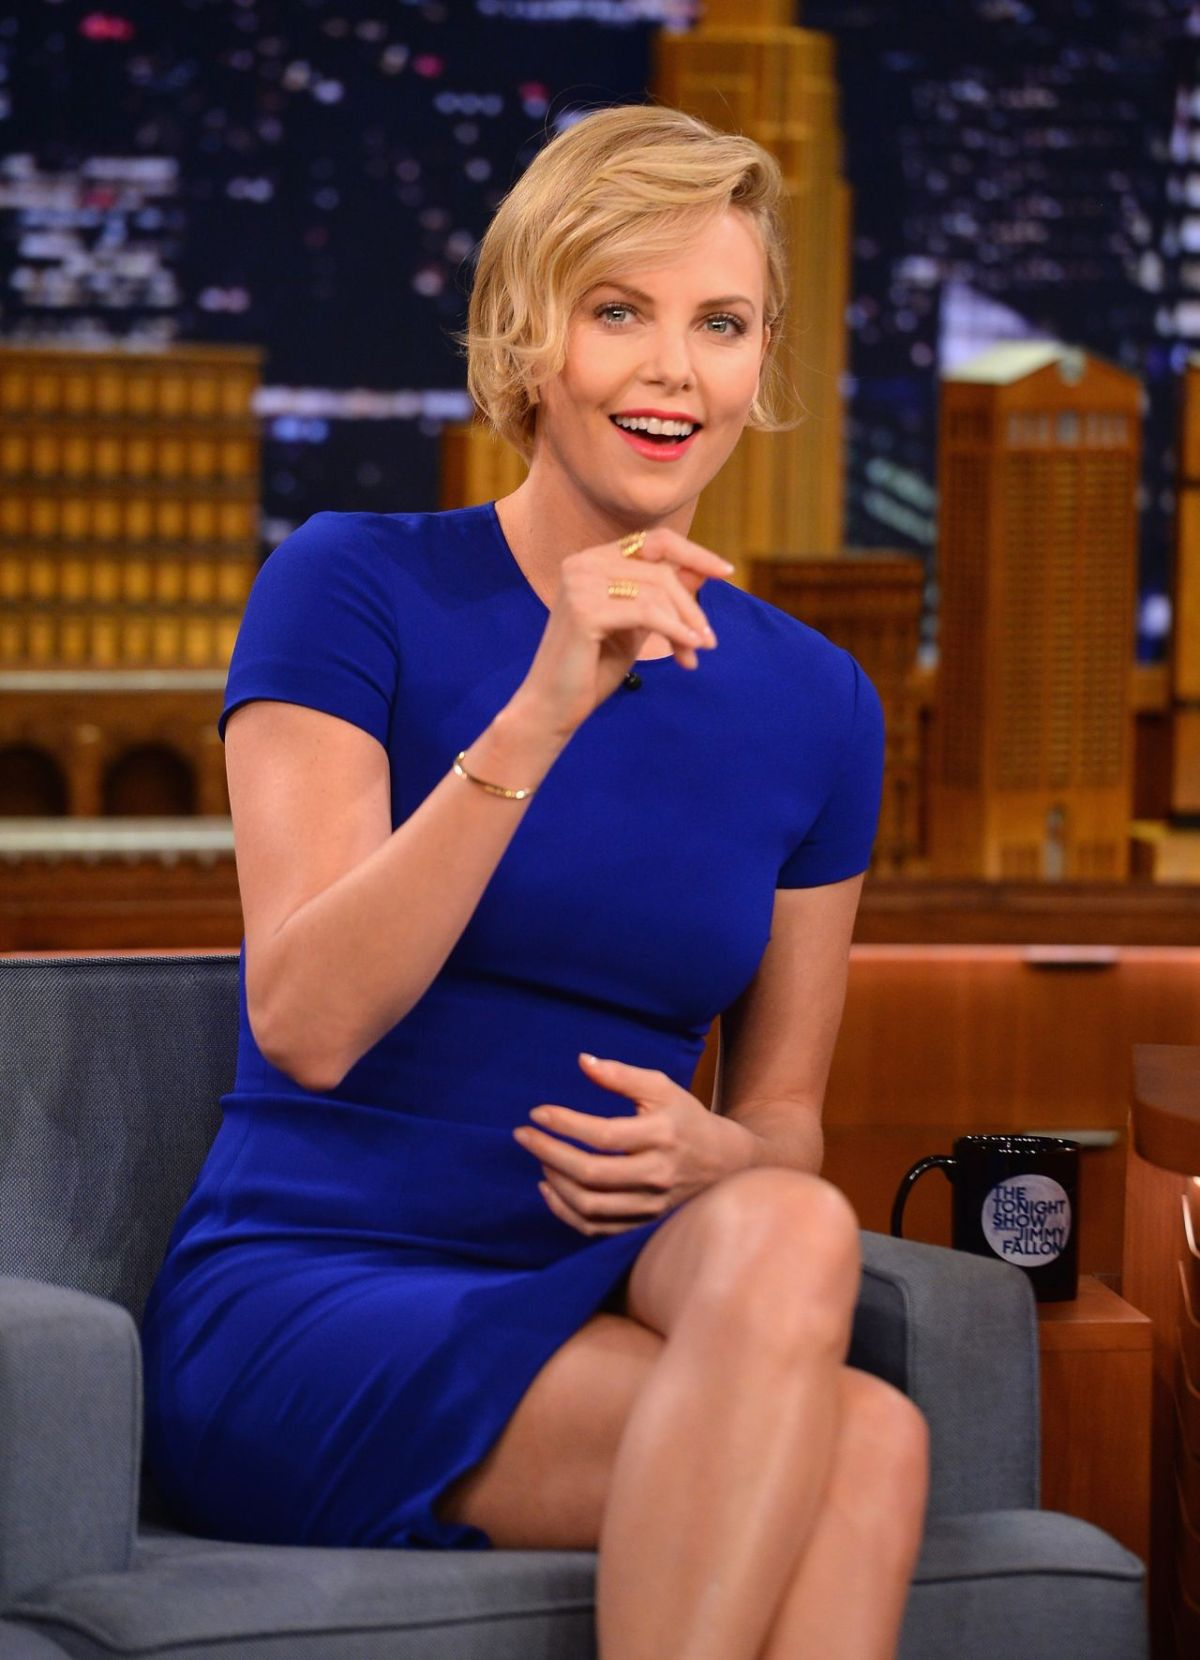 charlize-theron-at-the-tonight-show-starring-jimmy-fallon-may-2014_2